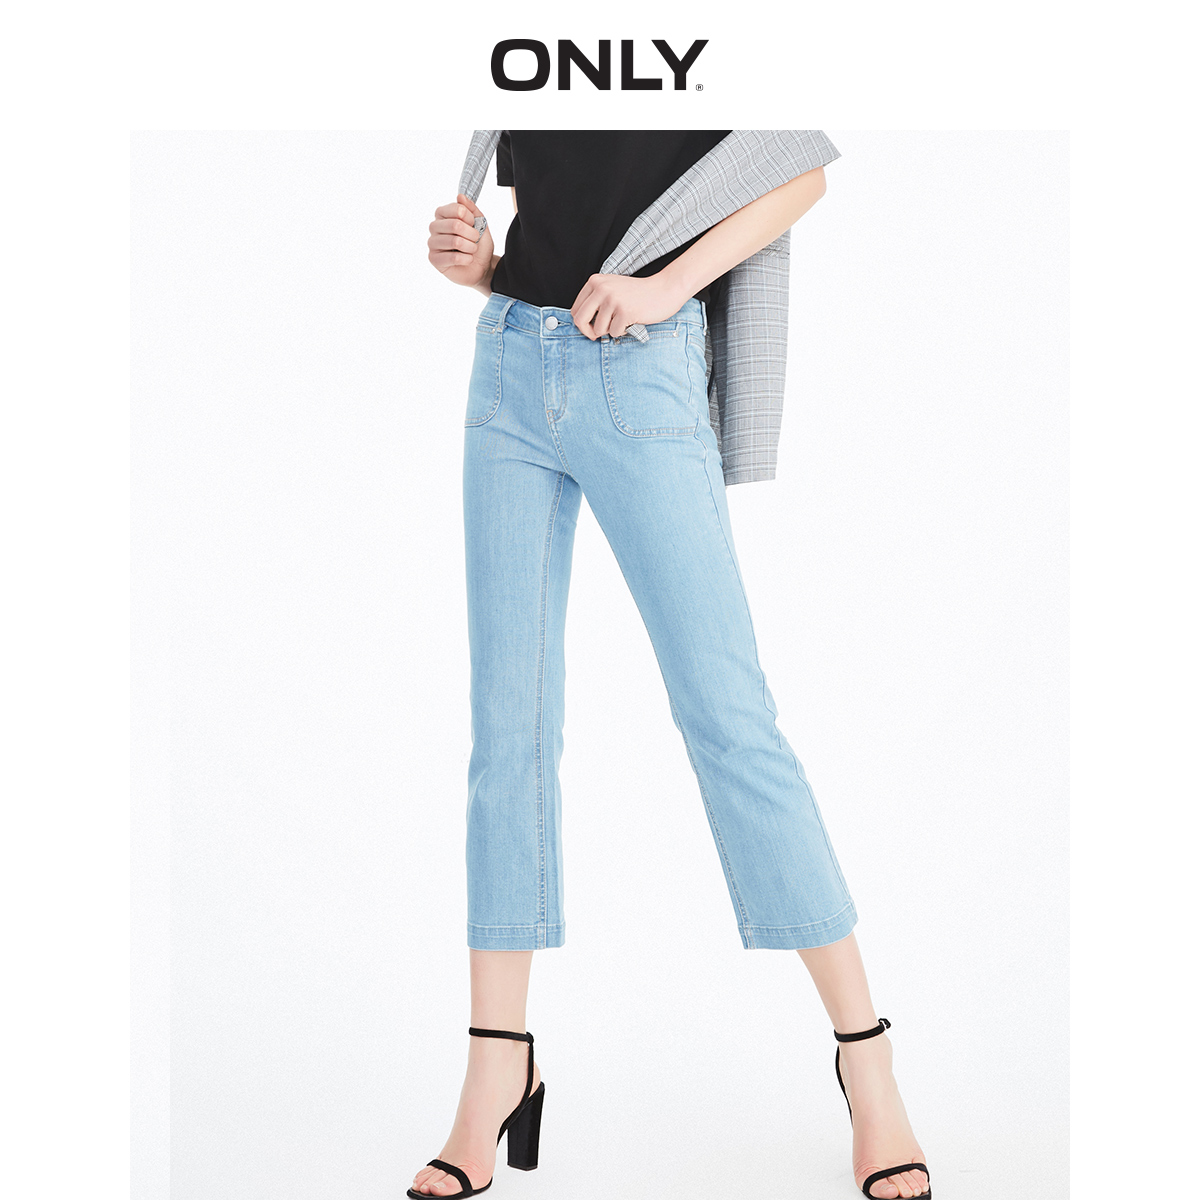 ONLY Women's Low-rise Slightly Flared Light Color Crop Jeans | 119249506